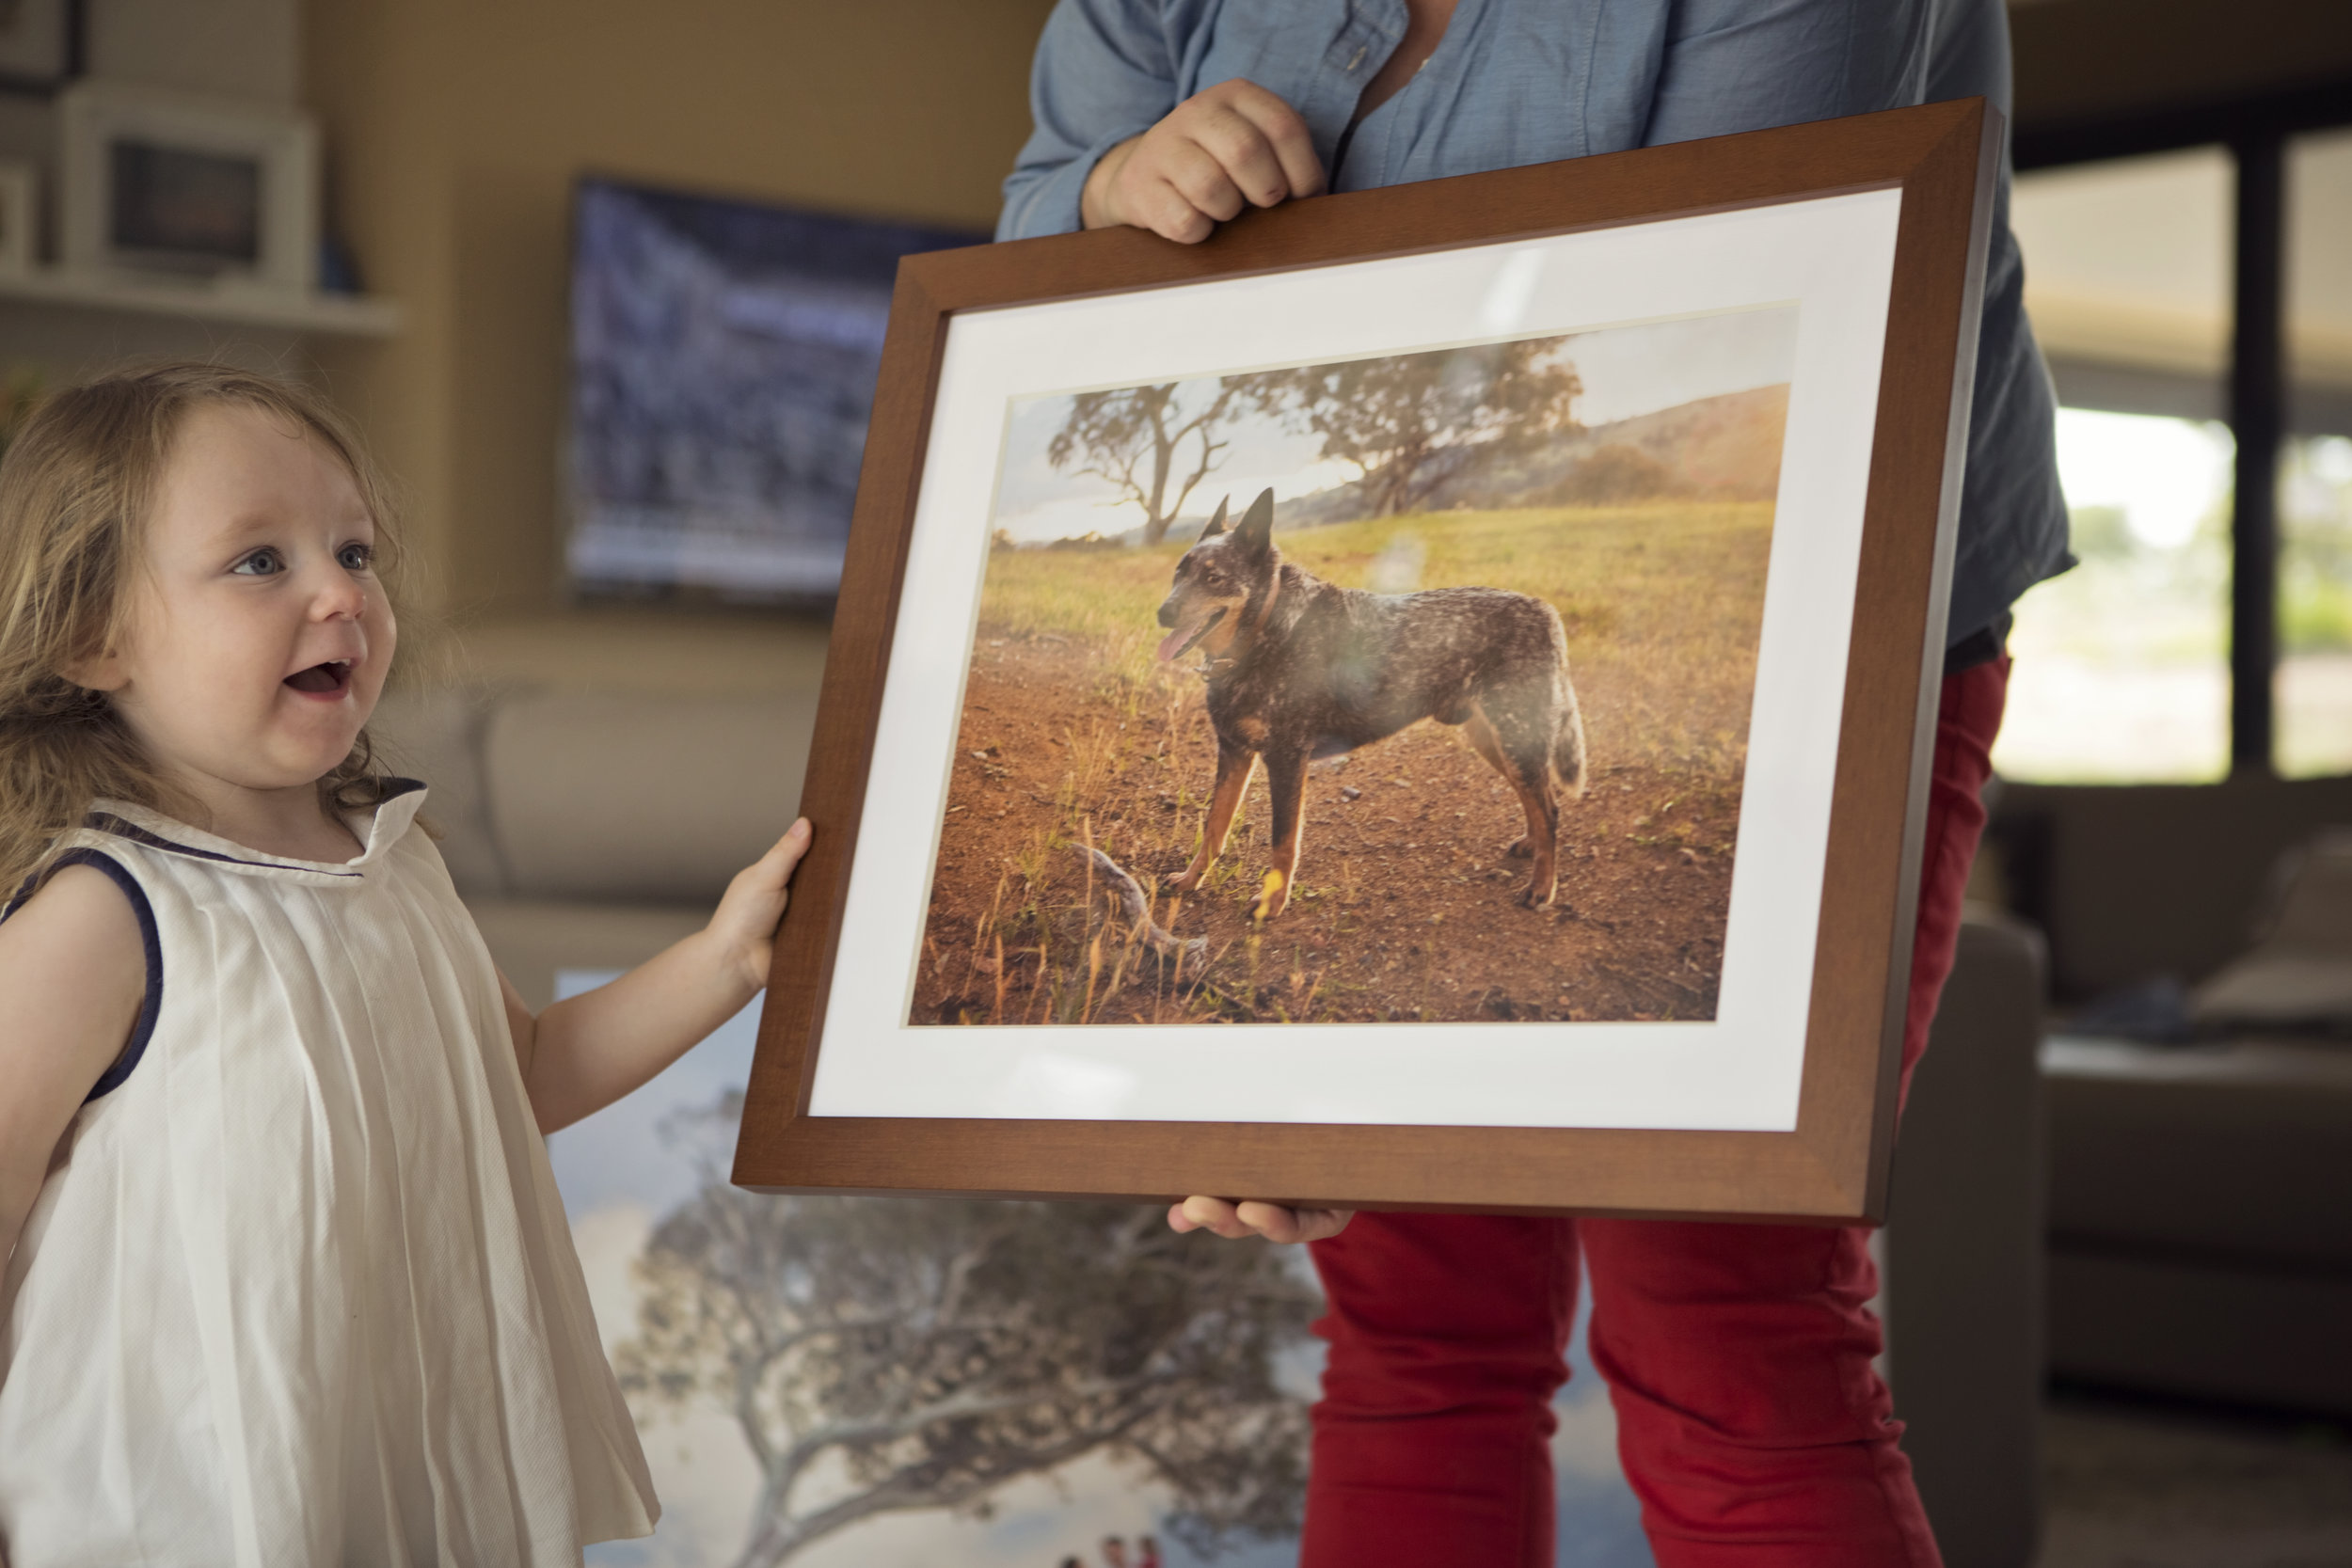 Medium Frame $350   For your favourite picture, my medium frame is the perfect size to add to a photo wall or fit a smaller wall space.